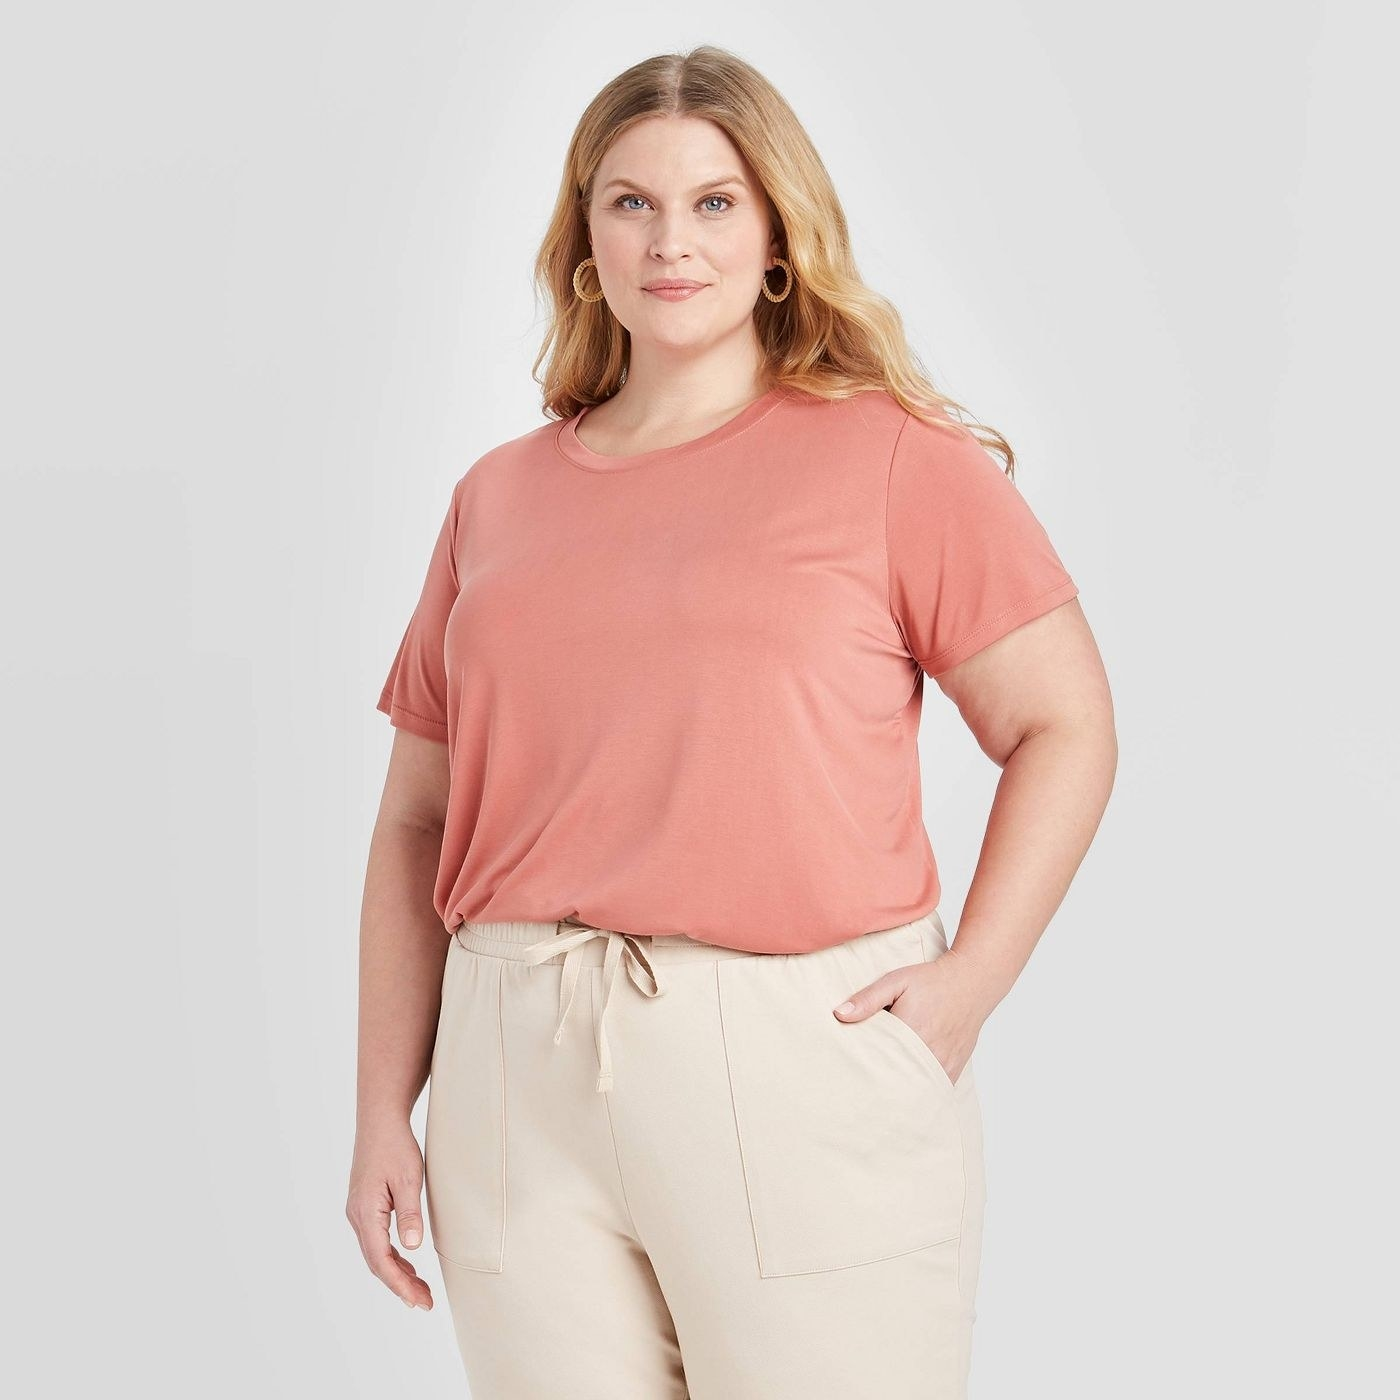 A model in a pink scoop neck tee